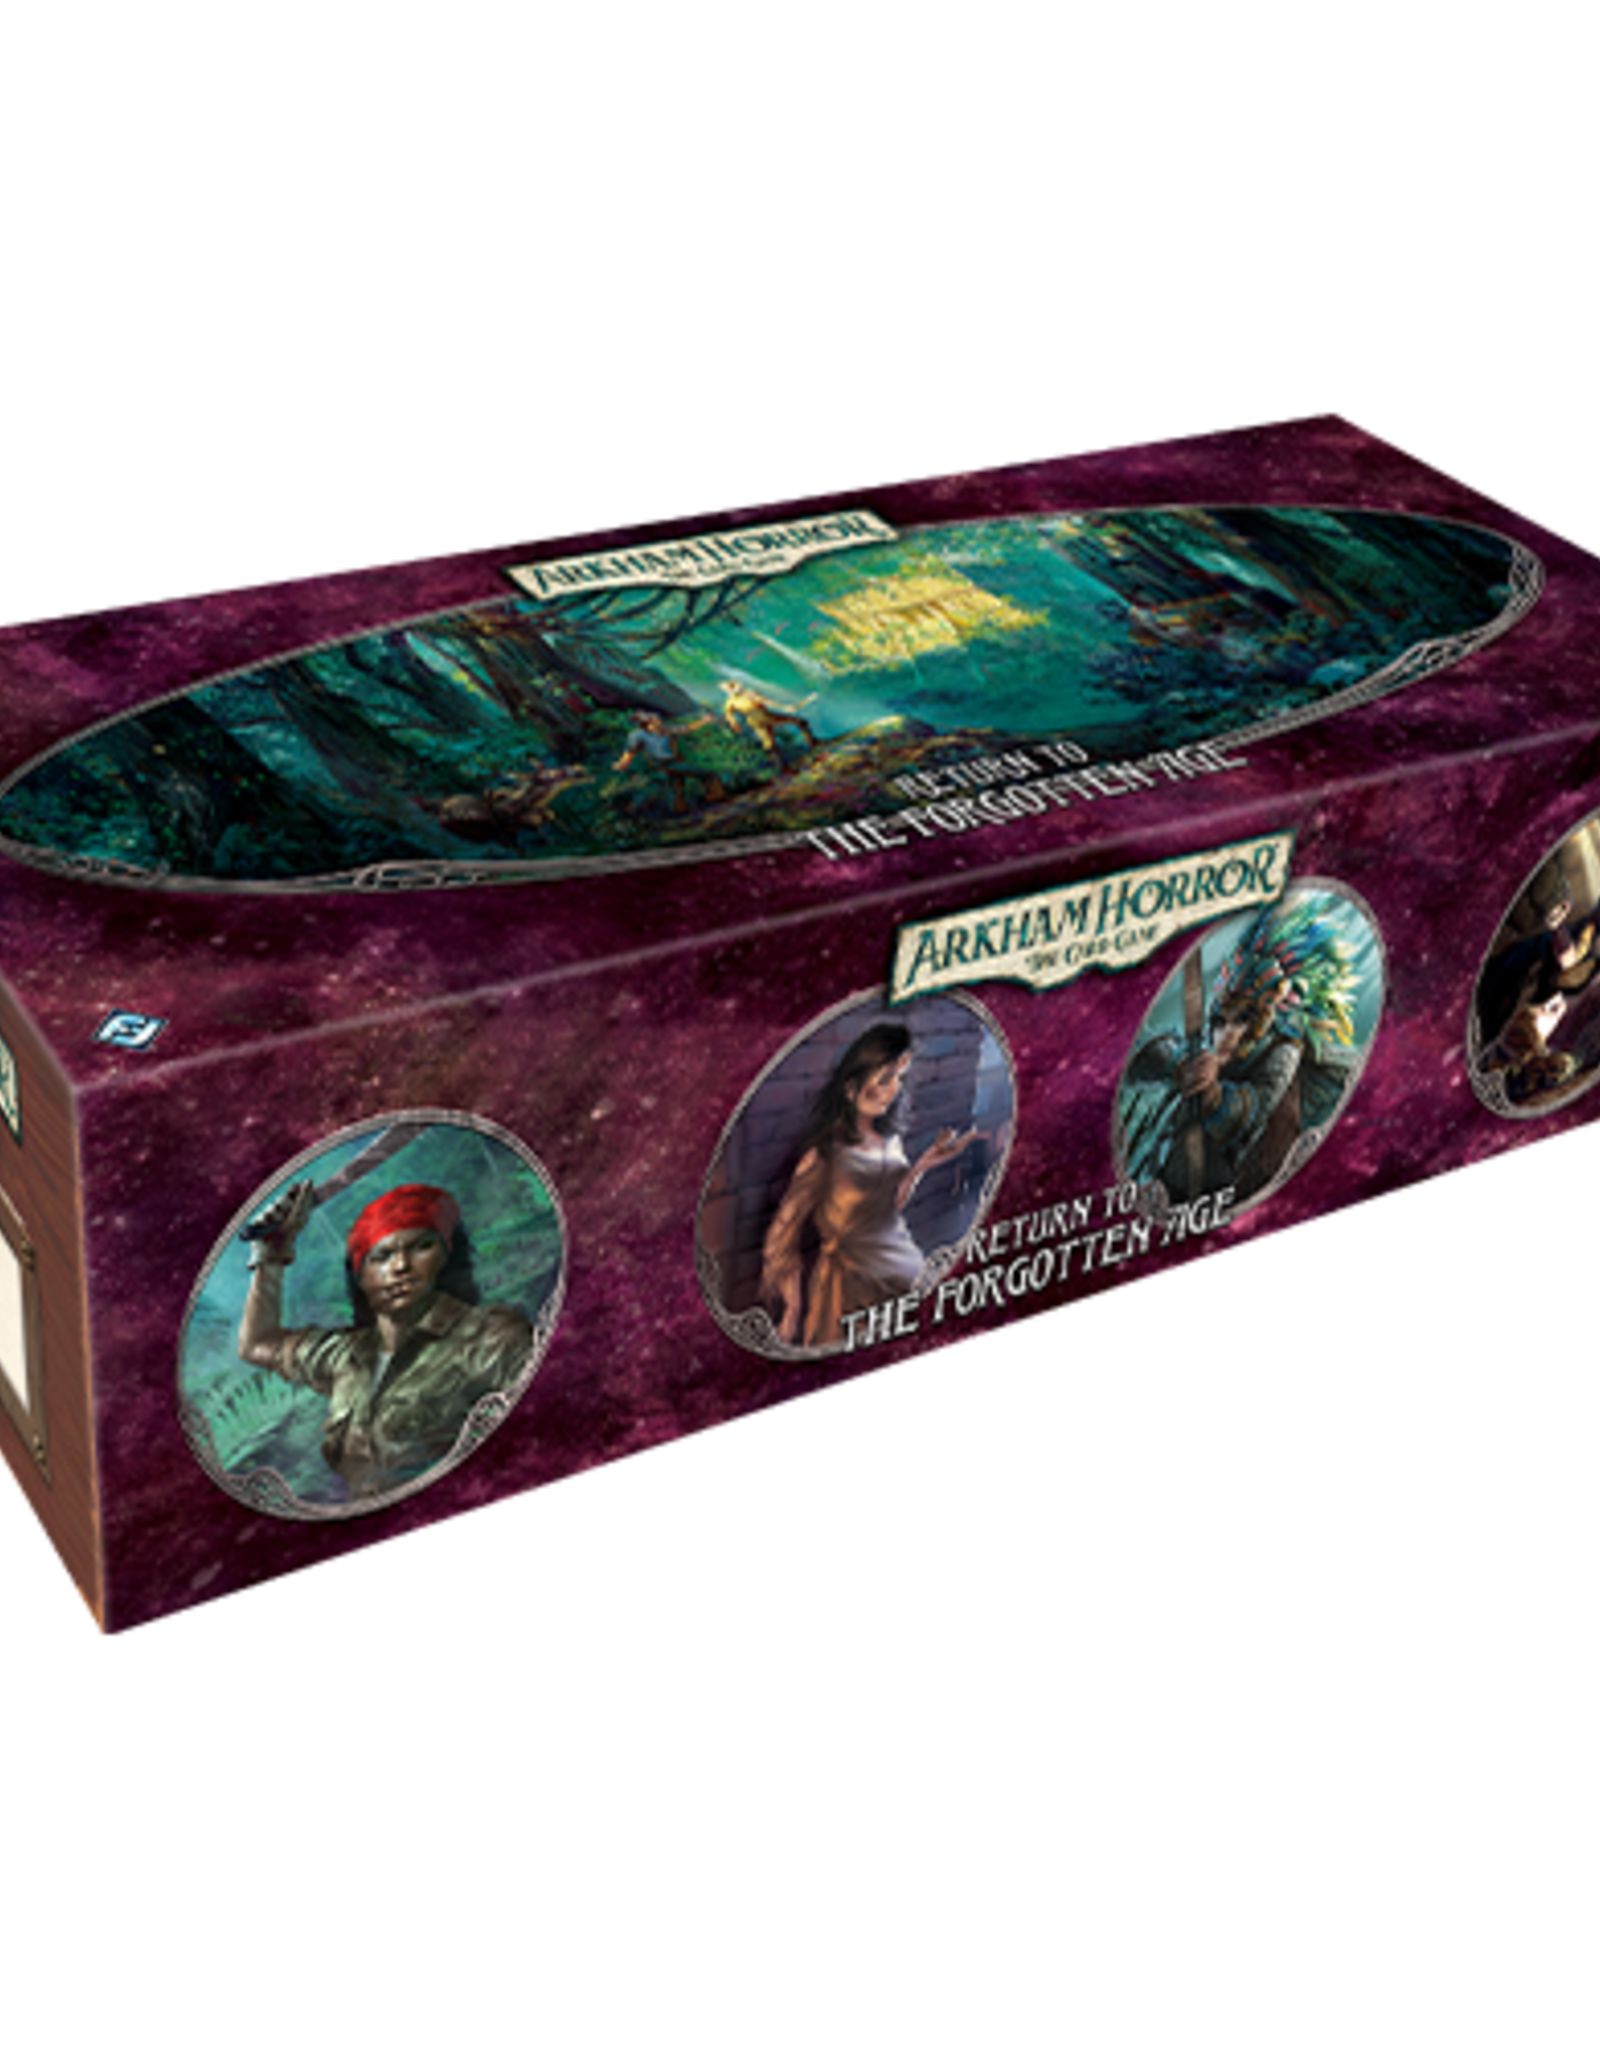 Arkham Horror LCG Box Return to the Forgotten Age Expansion